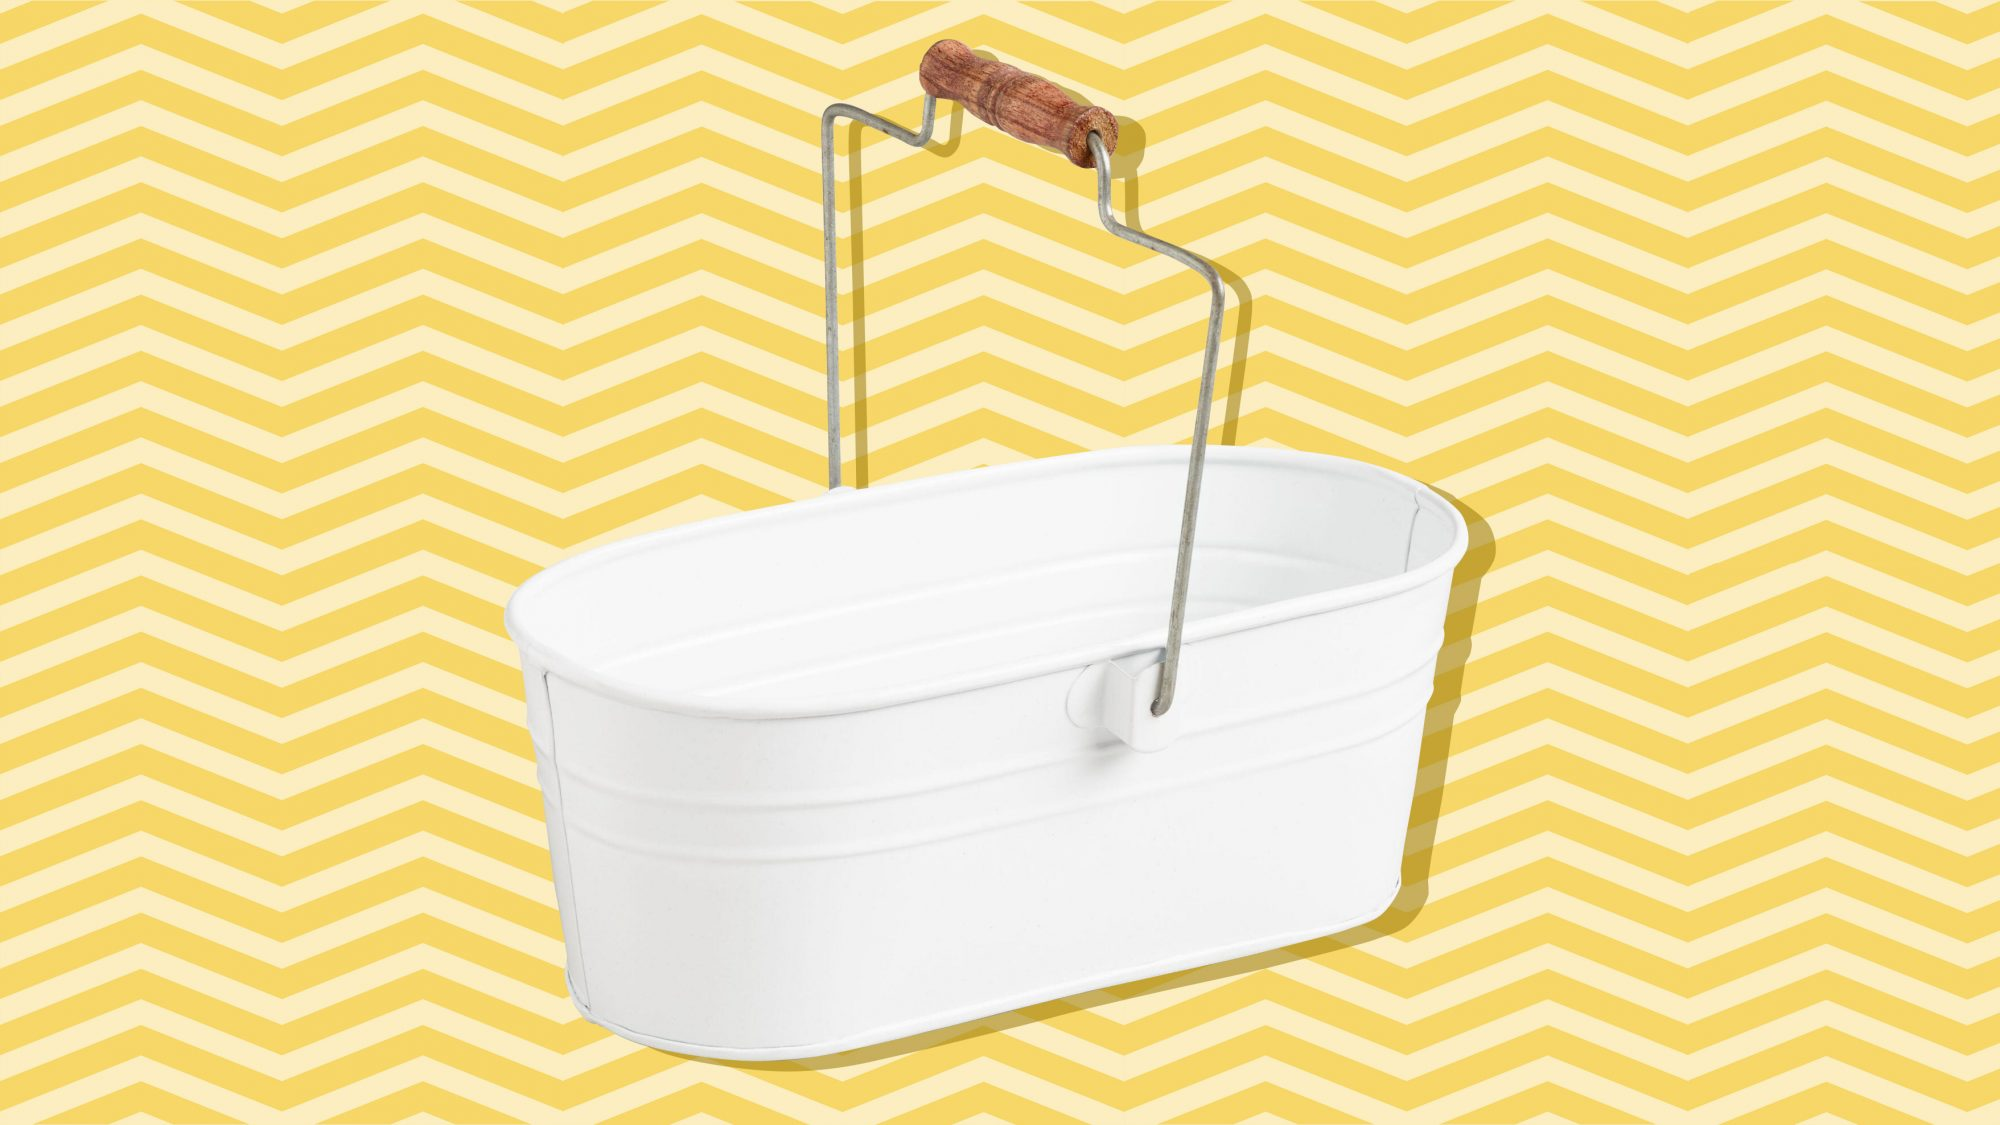 Everything You Need for Holiday Cleaning, Caddy